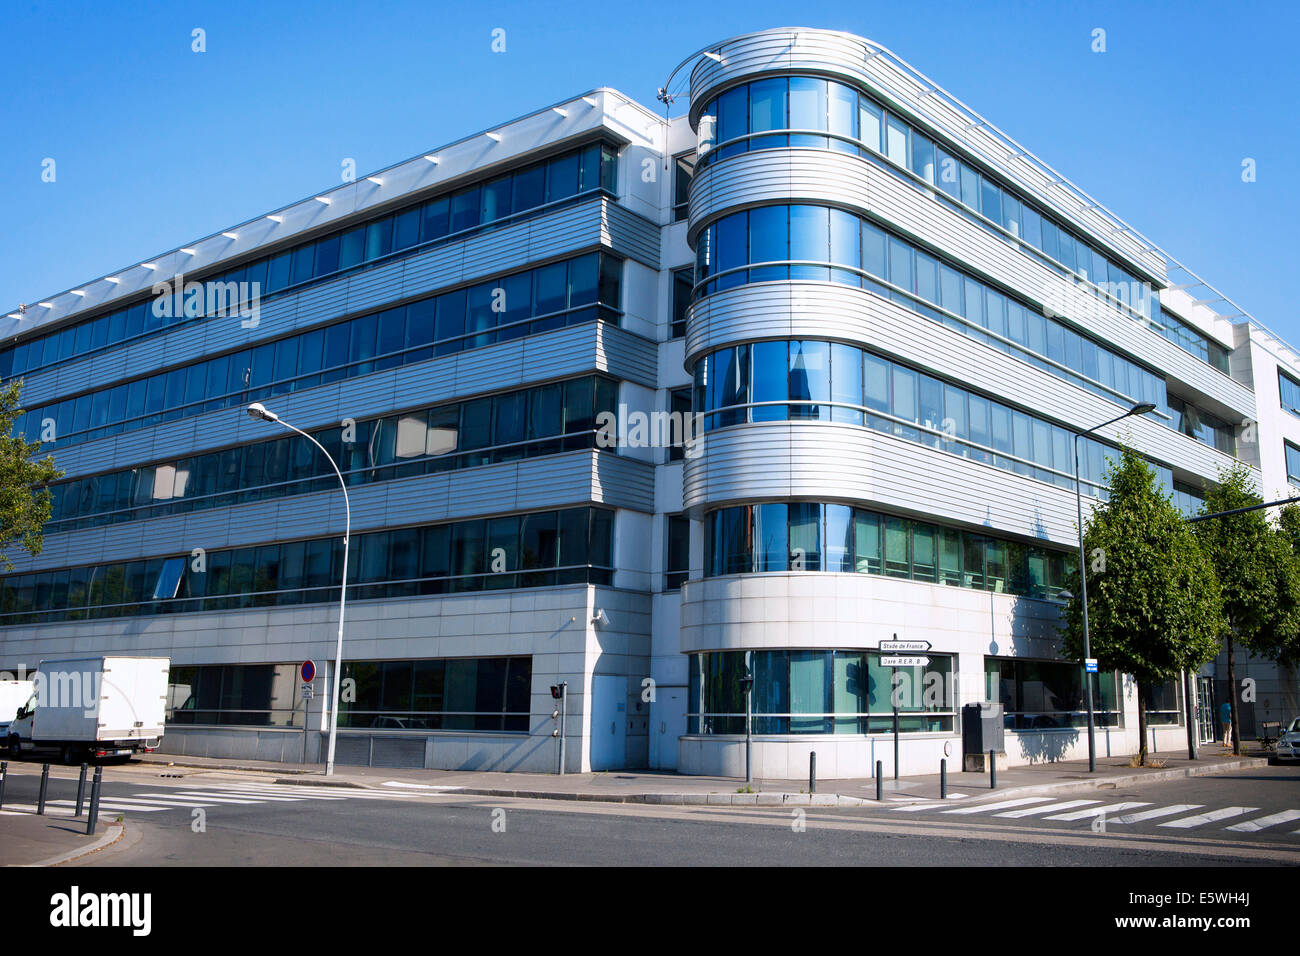 Biomedicine agency - Stock Image